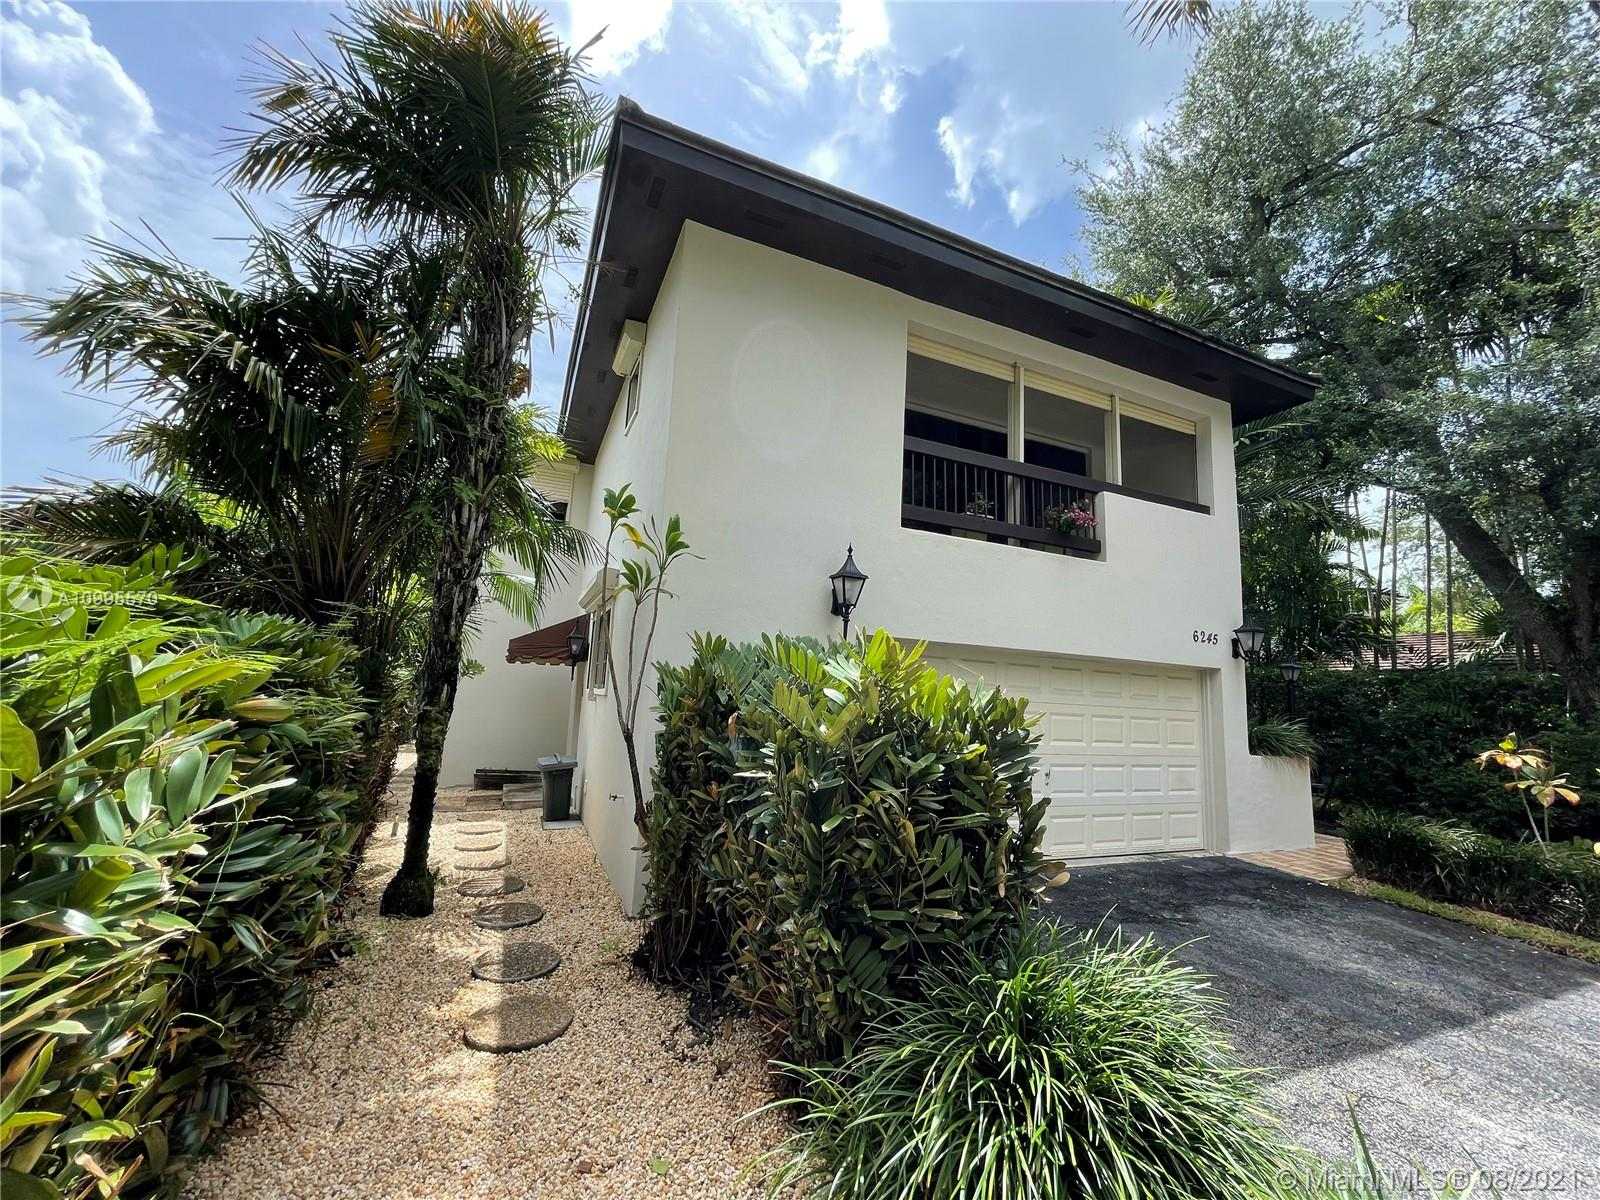 Contemporary happy home for the well-deserving on stunning Maynada St. Sought-After University of Miami Riviera area of Coral Gables E of US 1, volume ceilings never rented. Immerse yourself into French Provencal garden style living - 360 degree walkway  - maintenance-free yard, beautiful professional Marble floors downstairs, 4 sets of sliding glass doors, 2 central air units, 2 Master Bedrooms. (or library /  media room with balcony) Live a desirable classy lifestyle in established high-end neighborhood adjacent to Ponce Davis, the French Village, Coconut Grove, South Miami, Sunset Elementary School (Sunset Magnet School) International Baccalaureat Program. Professional Rolladen Hurricane shutters, icemaker, 3.5 baths.2-car garage, Always Owner-occupied. Never rented.